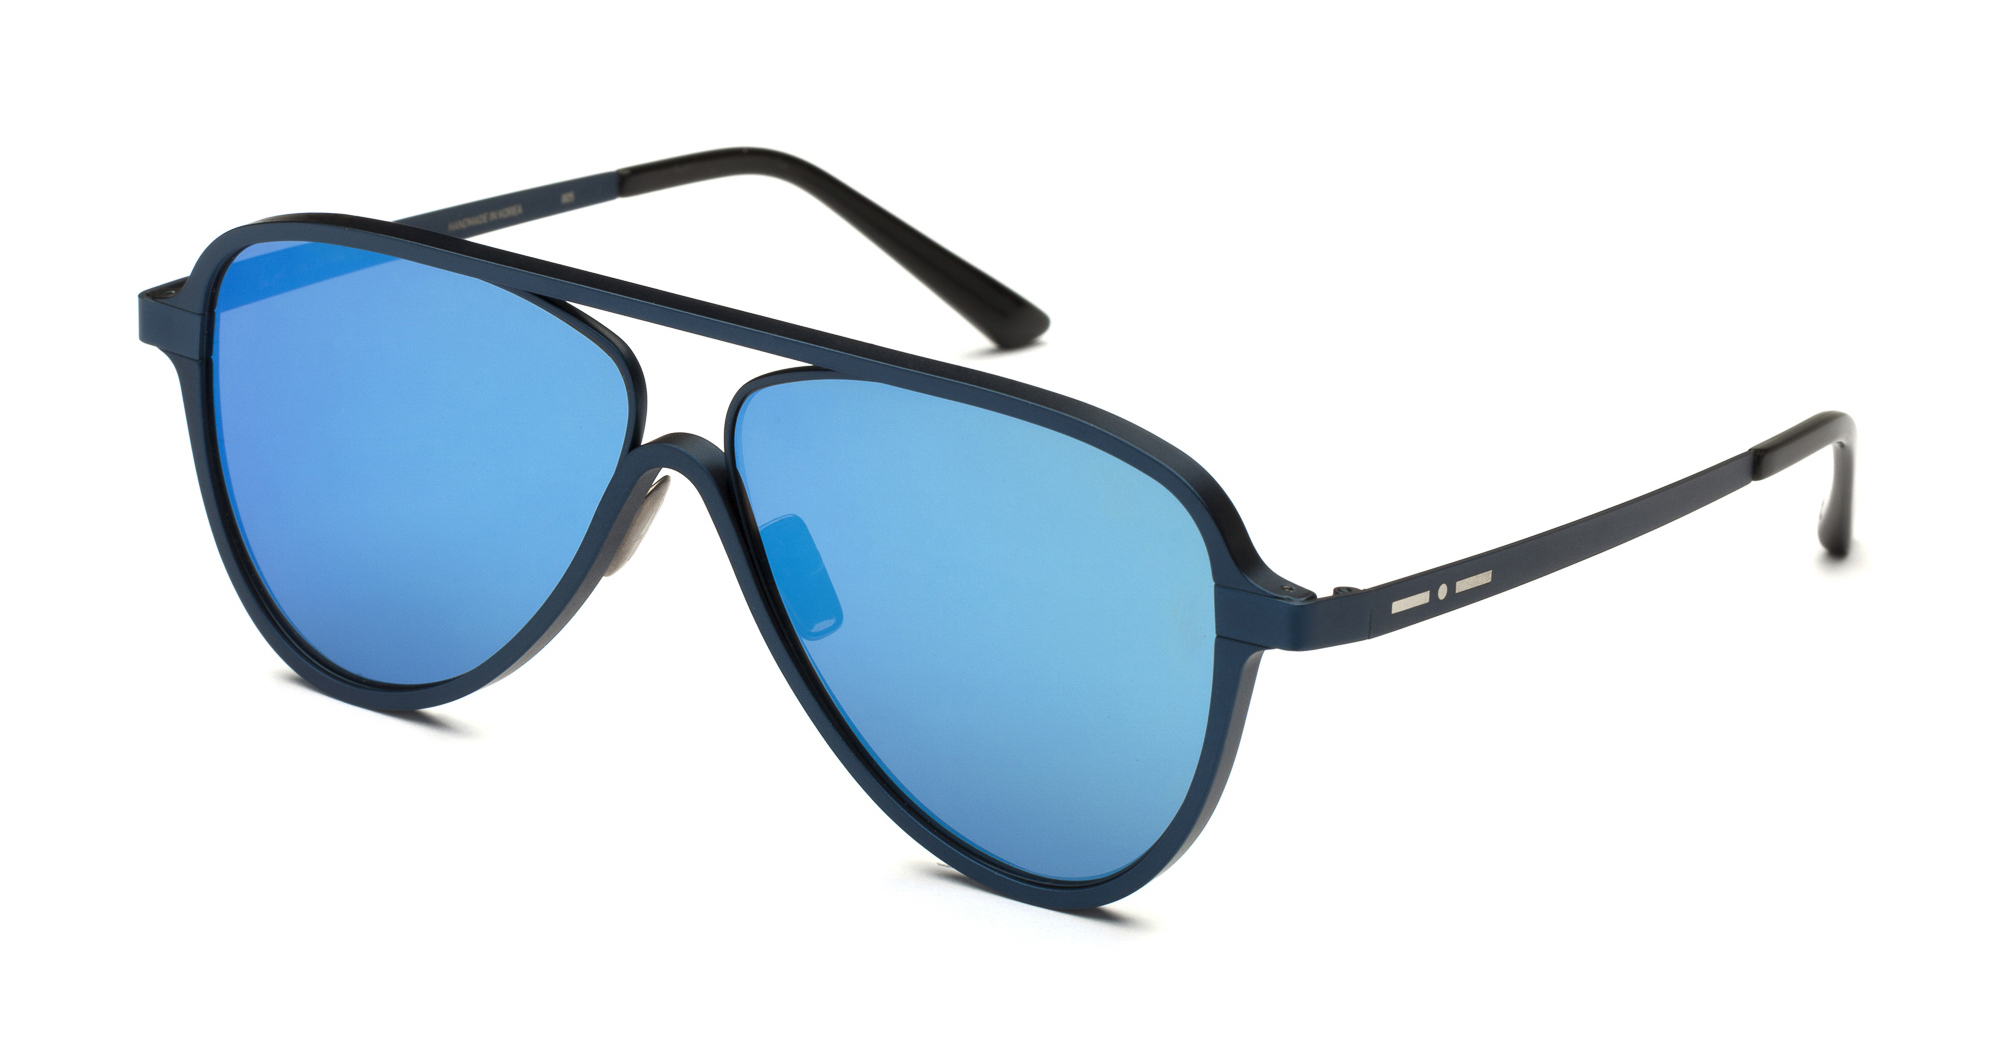 Italia Independent - Occhiale da Sole Unisex, Ayrton Laps Collection, Light Blue/Polarized Blue 003LP C55